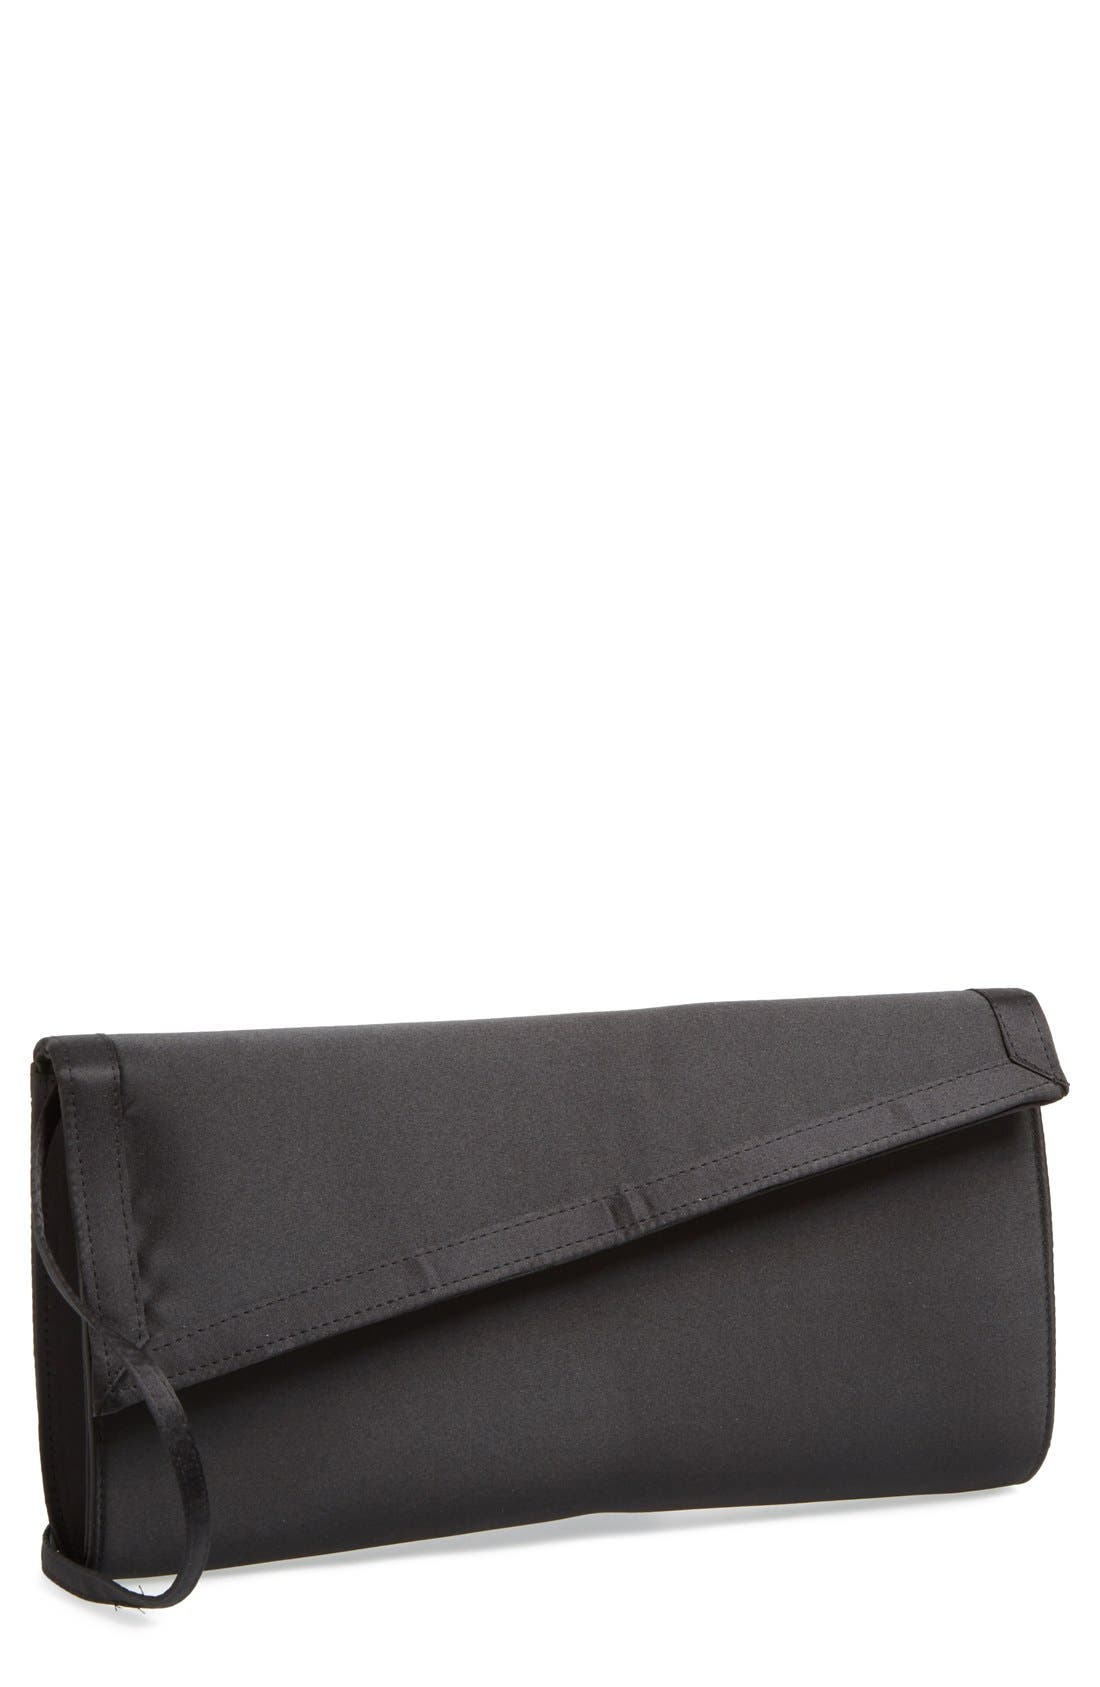 Alternate Image 1 Selected - Nina 'Large Lincoln' Satin Clutch